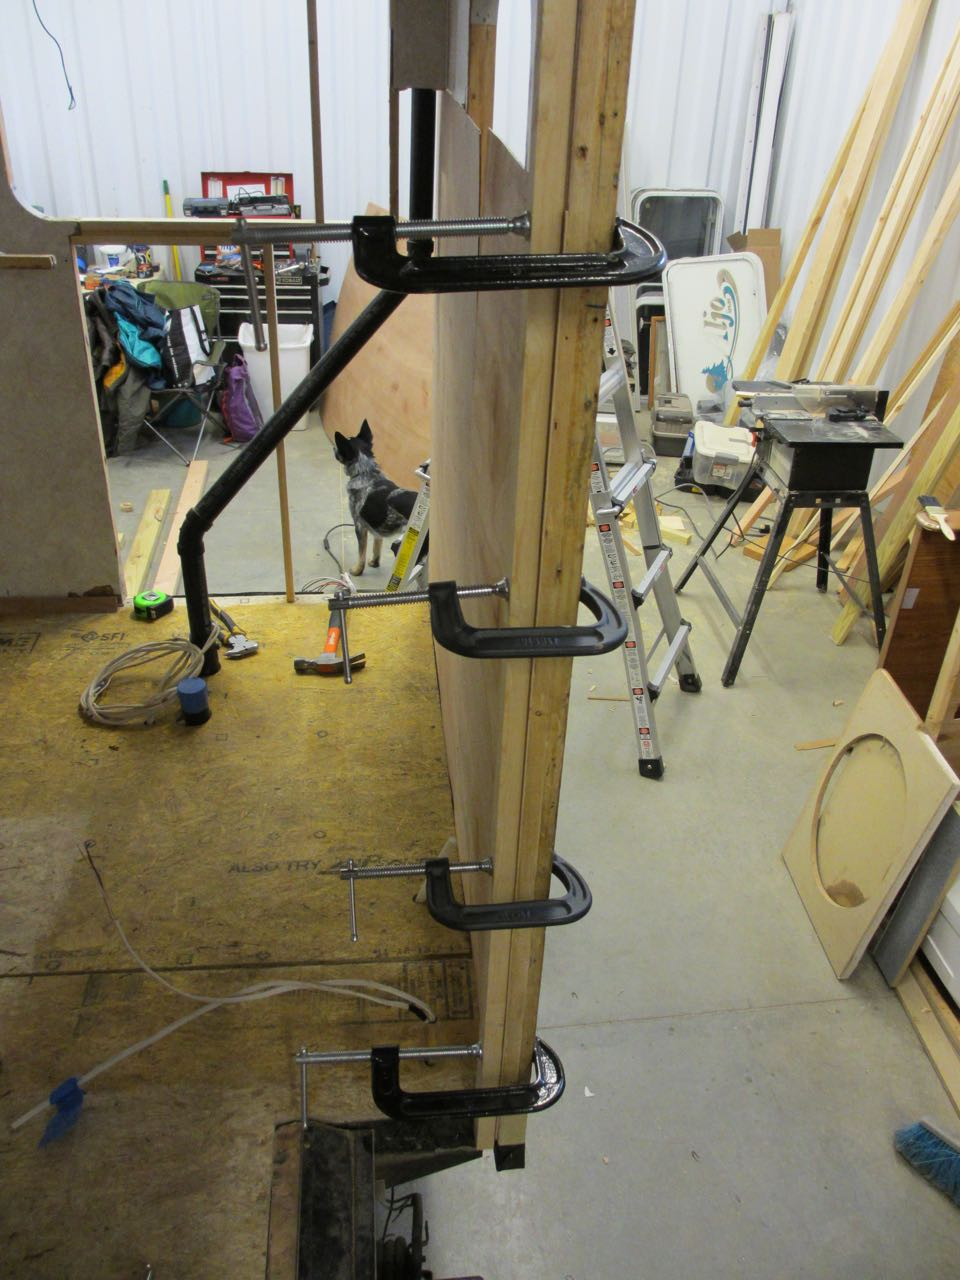 Clamps held the luan against the beams overnight to ensure it was glued tightly.